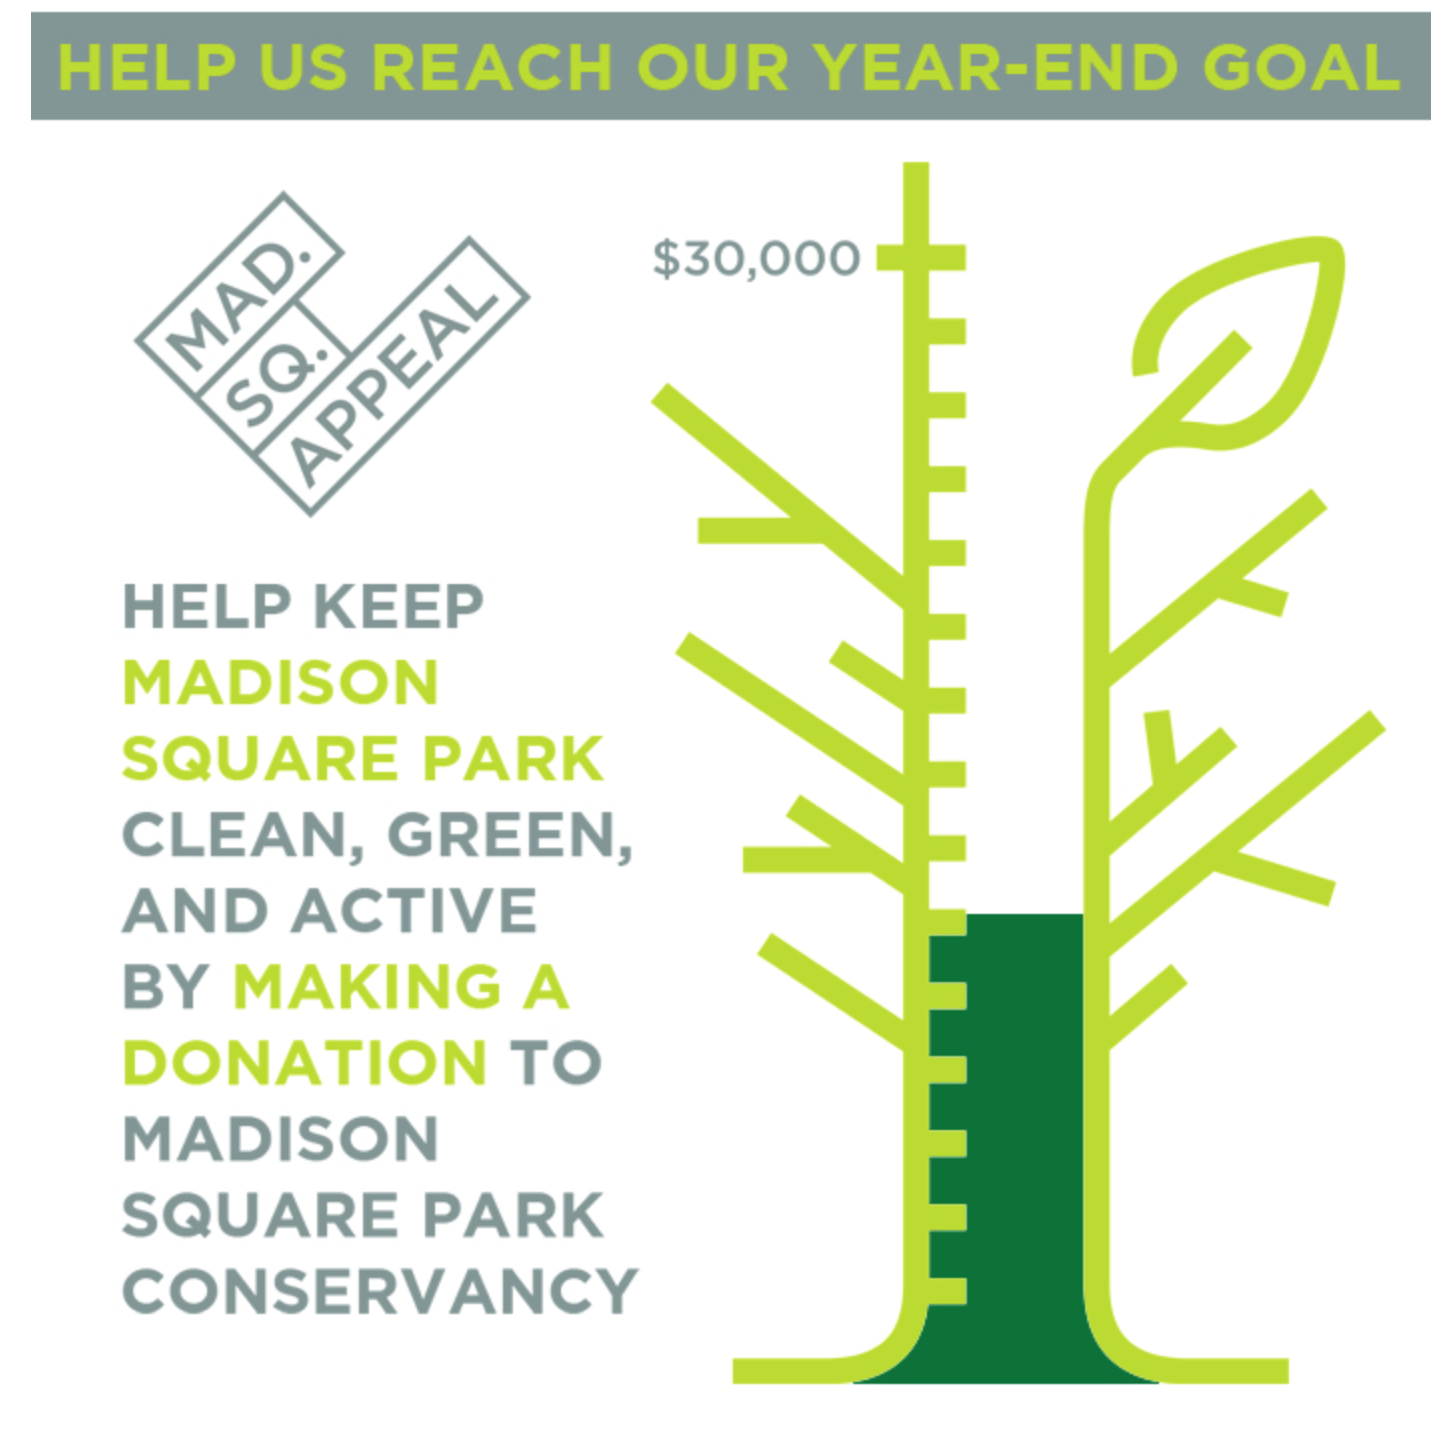 madison square park donation appeal for park services